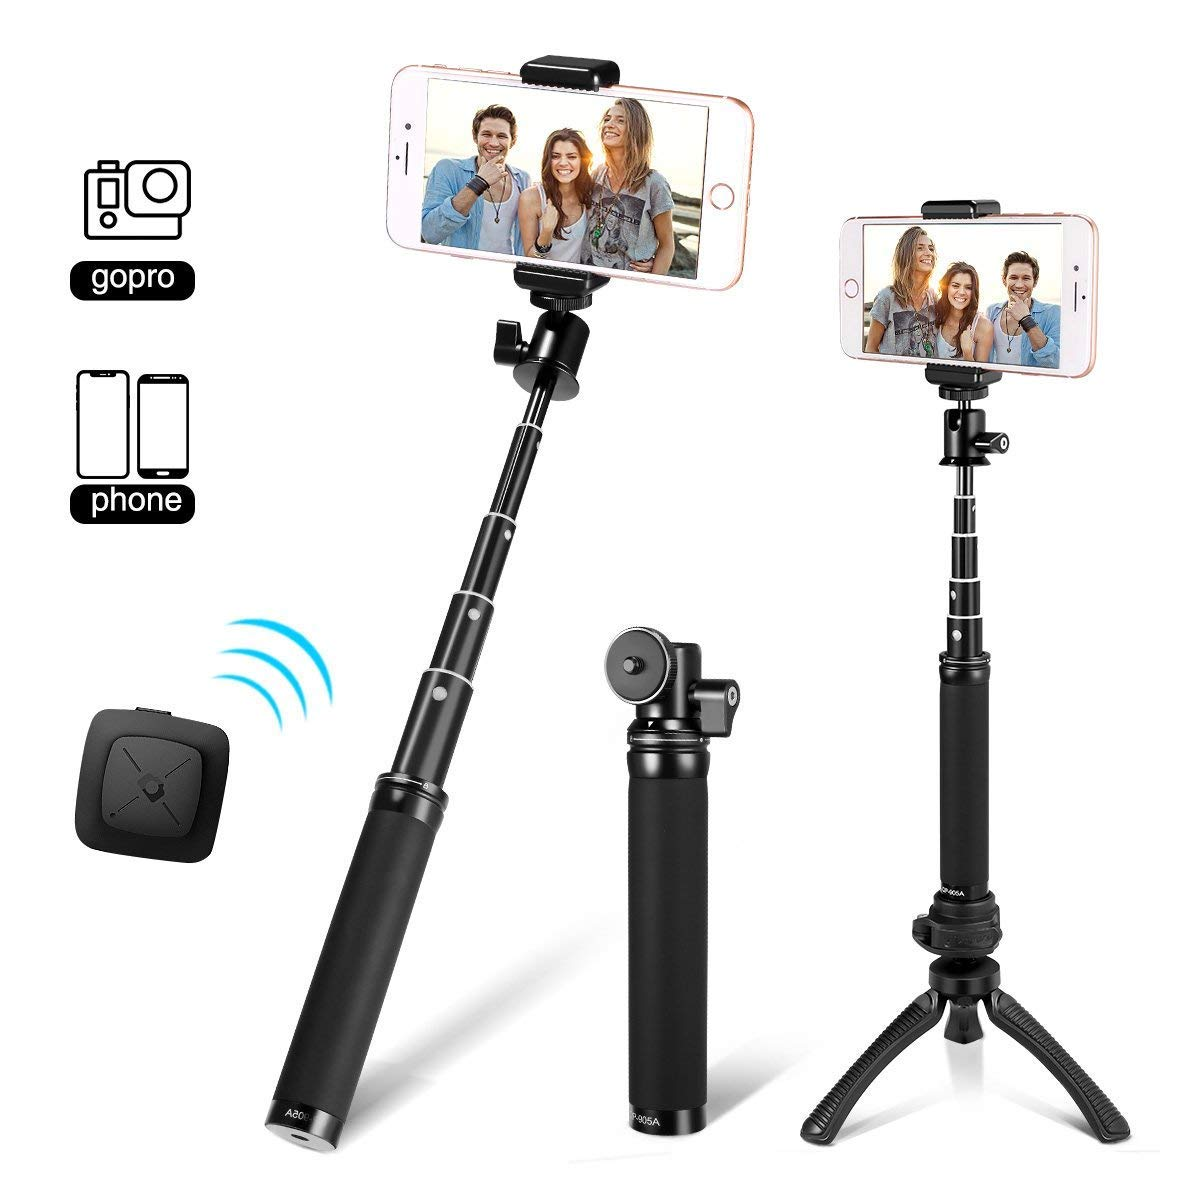 Fotopro 28'' Selfie Stick Tripod with Bluetooth Remote Cliker, Phone Tripod Mount, Removable Mini Tripod, for Android Smartphone iPhone X 7 Plus, Samsung Galaxy S9 Note 8, Huawei P20, Best Travel Gifts